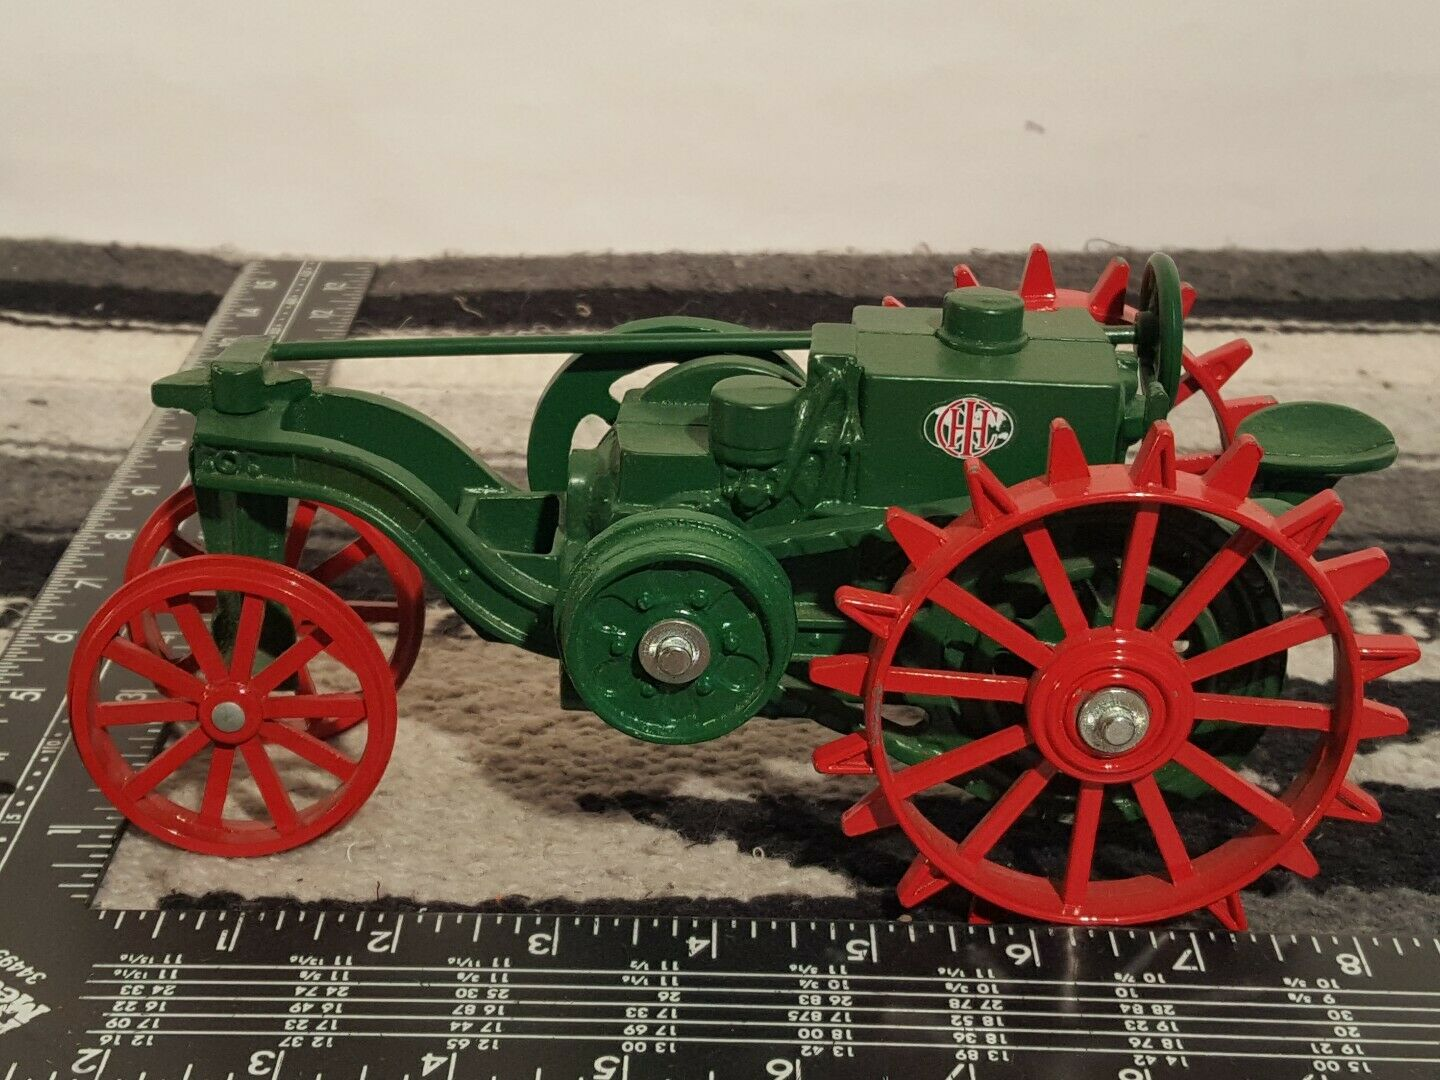 IH 8-16 Mogal Heritage Series No.4 1 16 diecast tractor replica by Scale Models